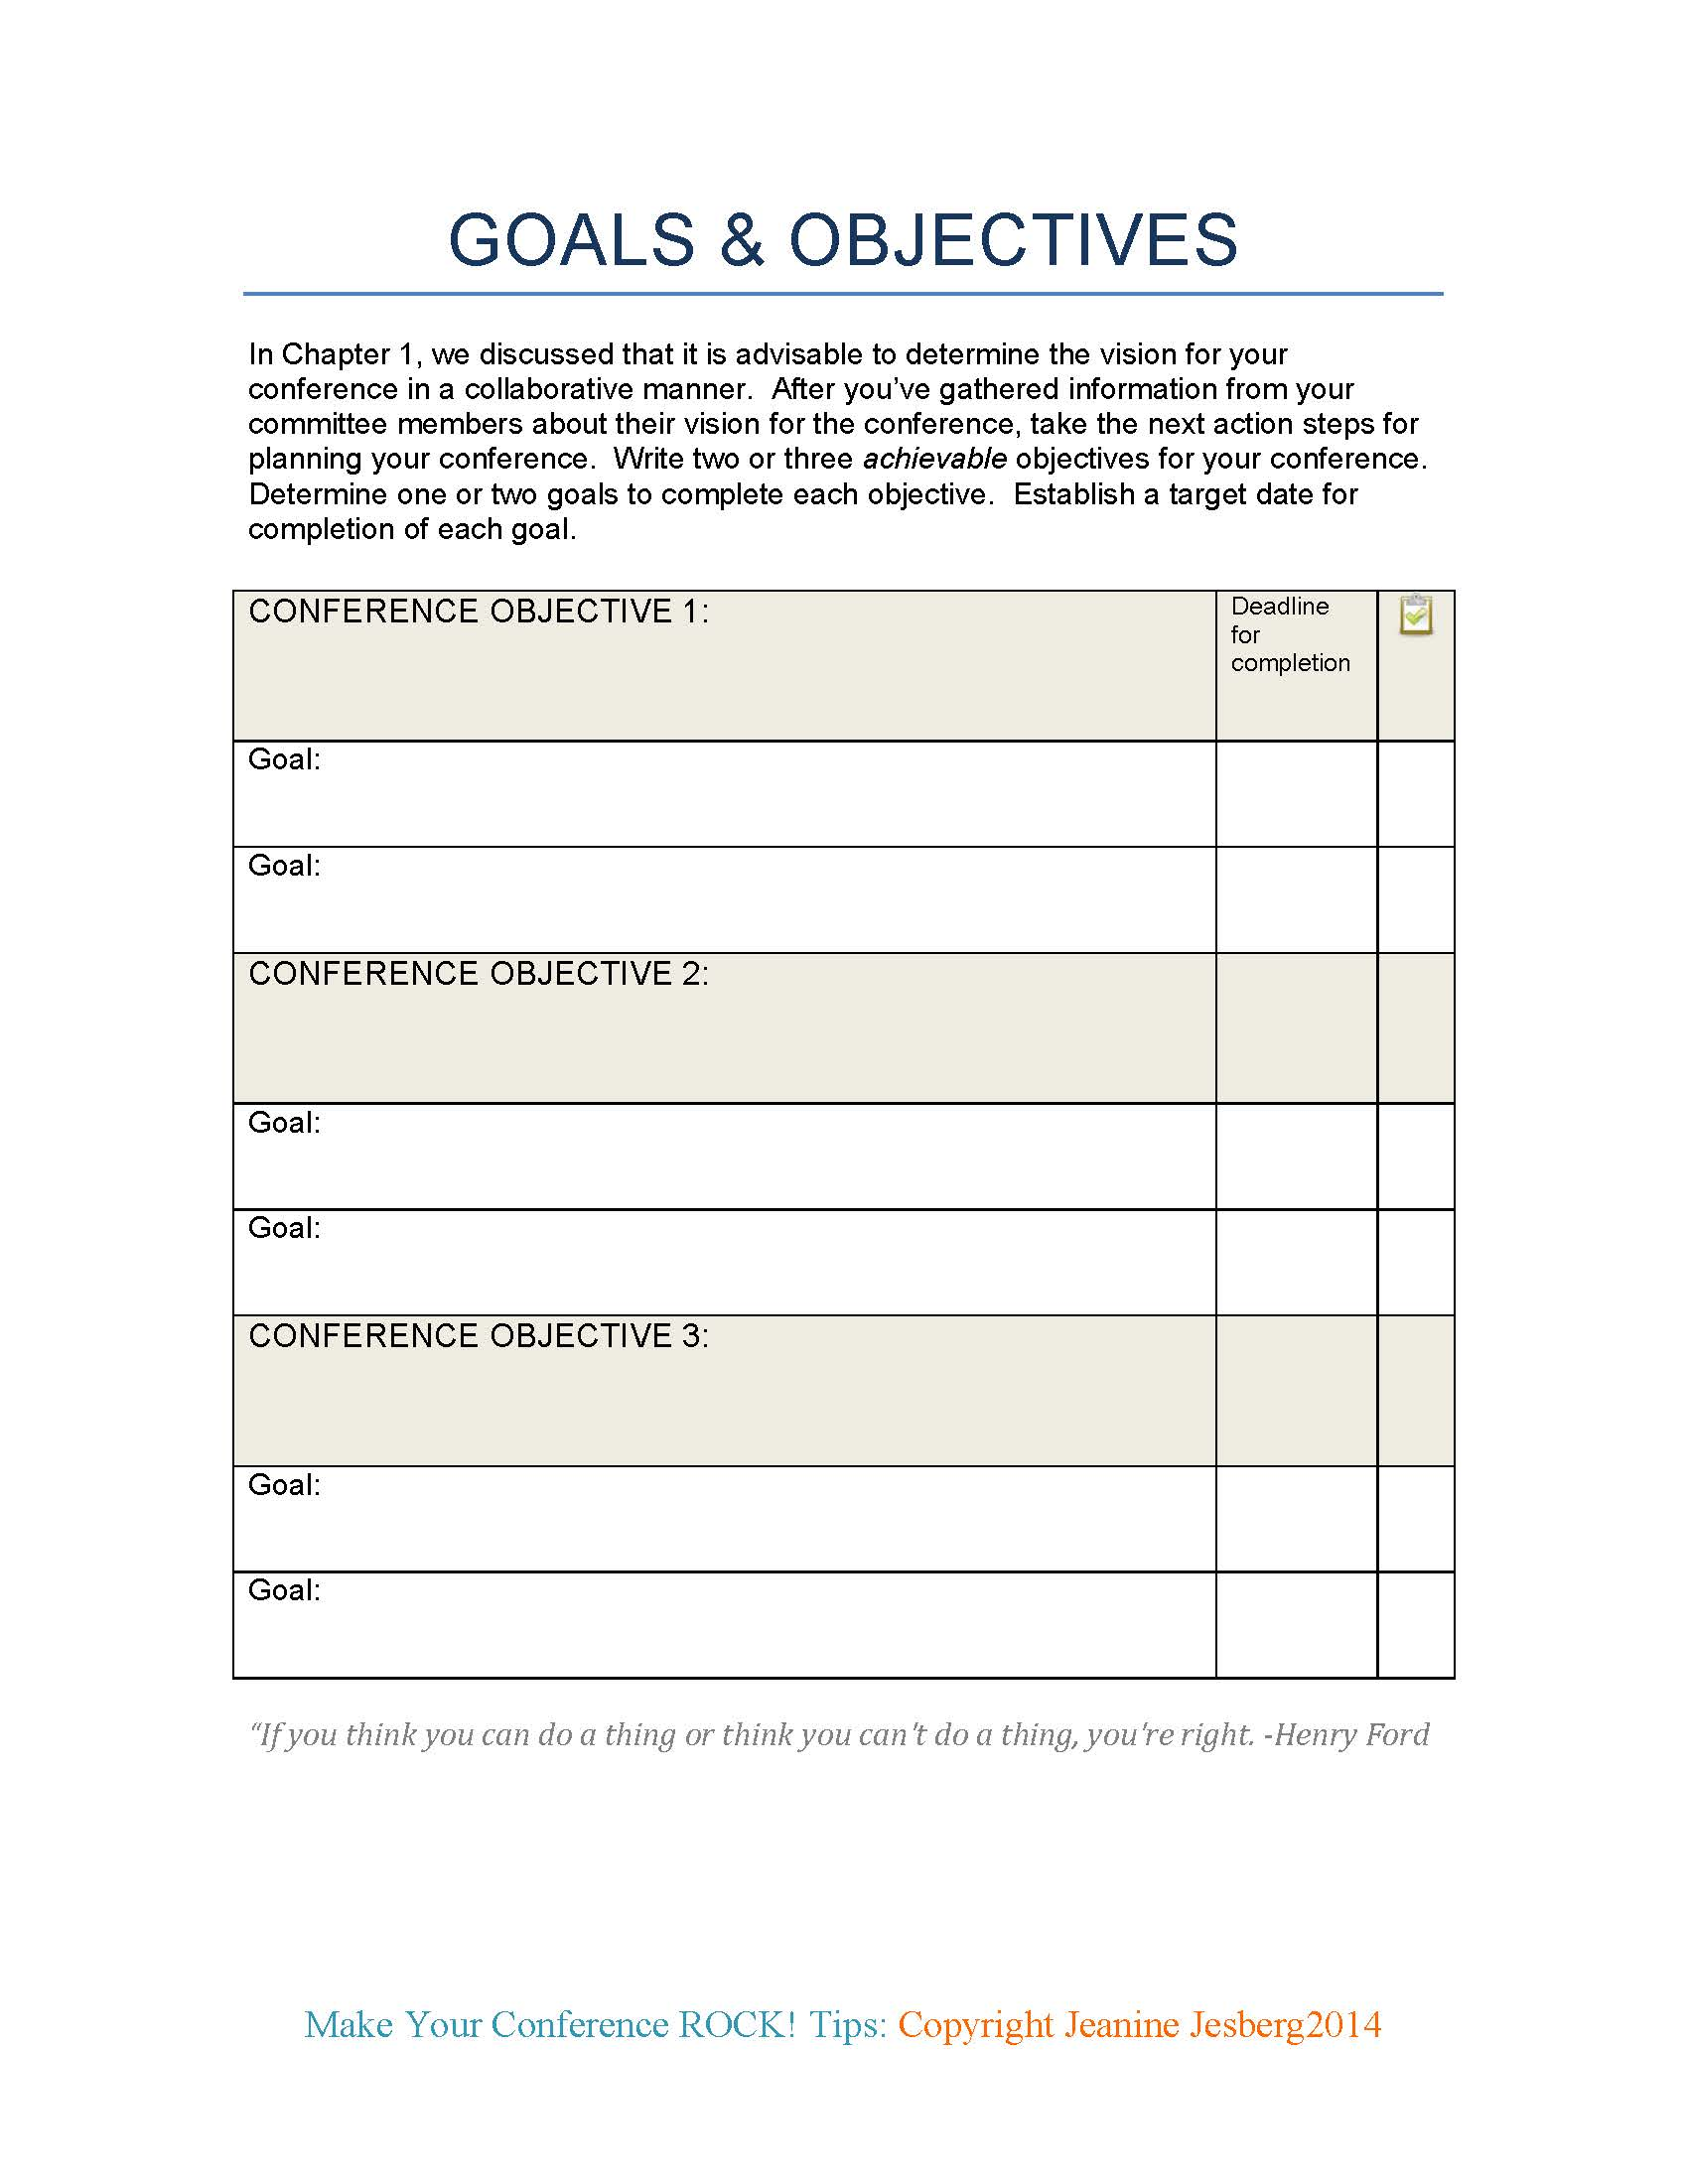 Worksheets Goals And Objectives Worksheet goals and objectives worksheet vintagegrn worksheet